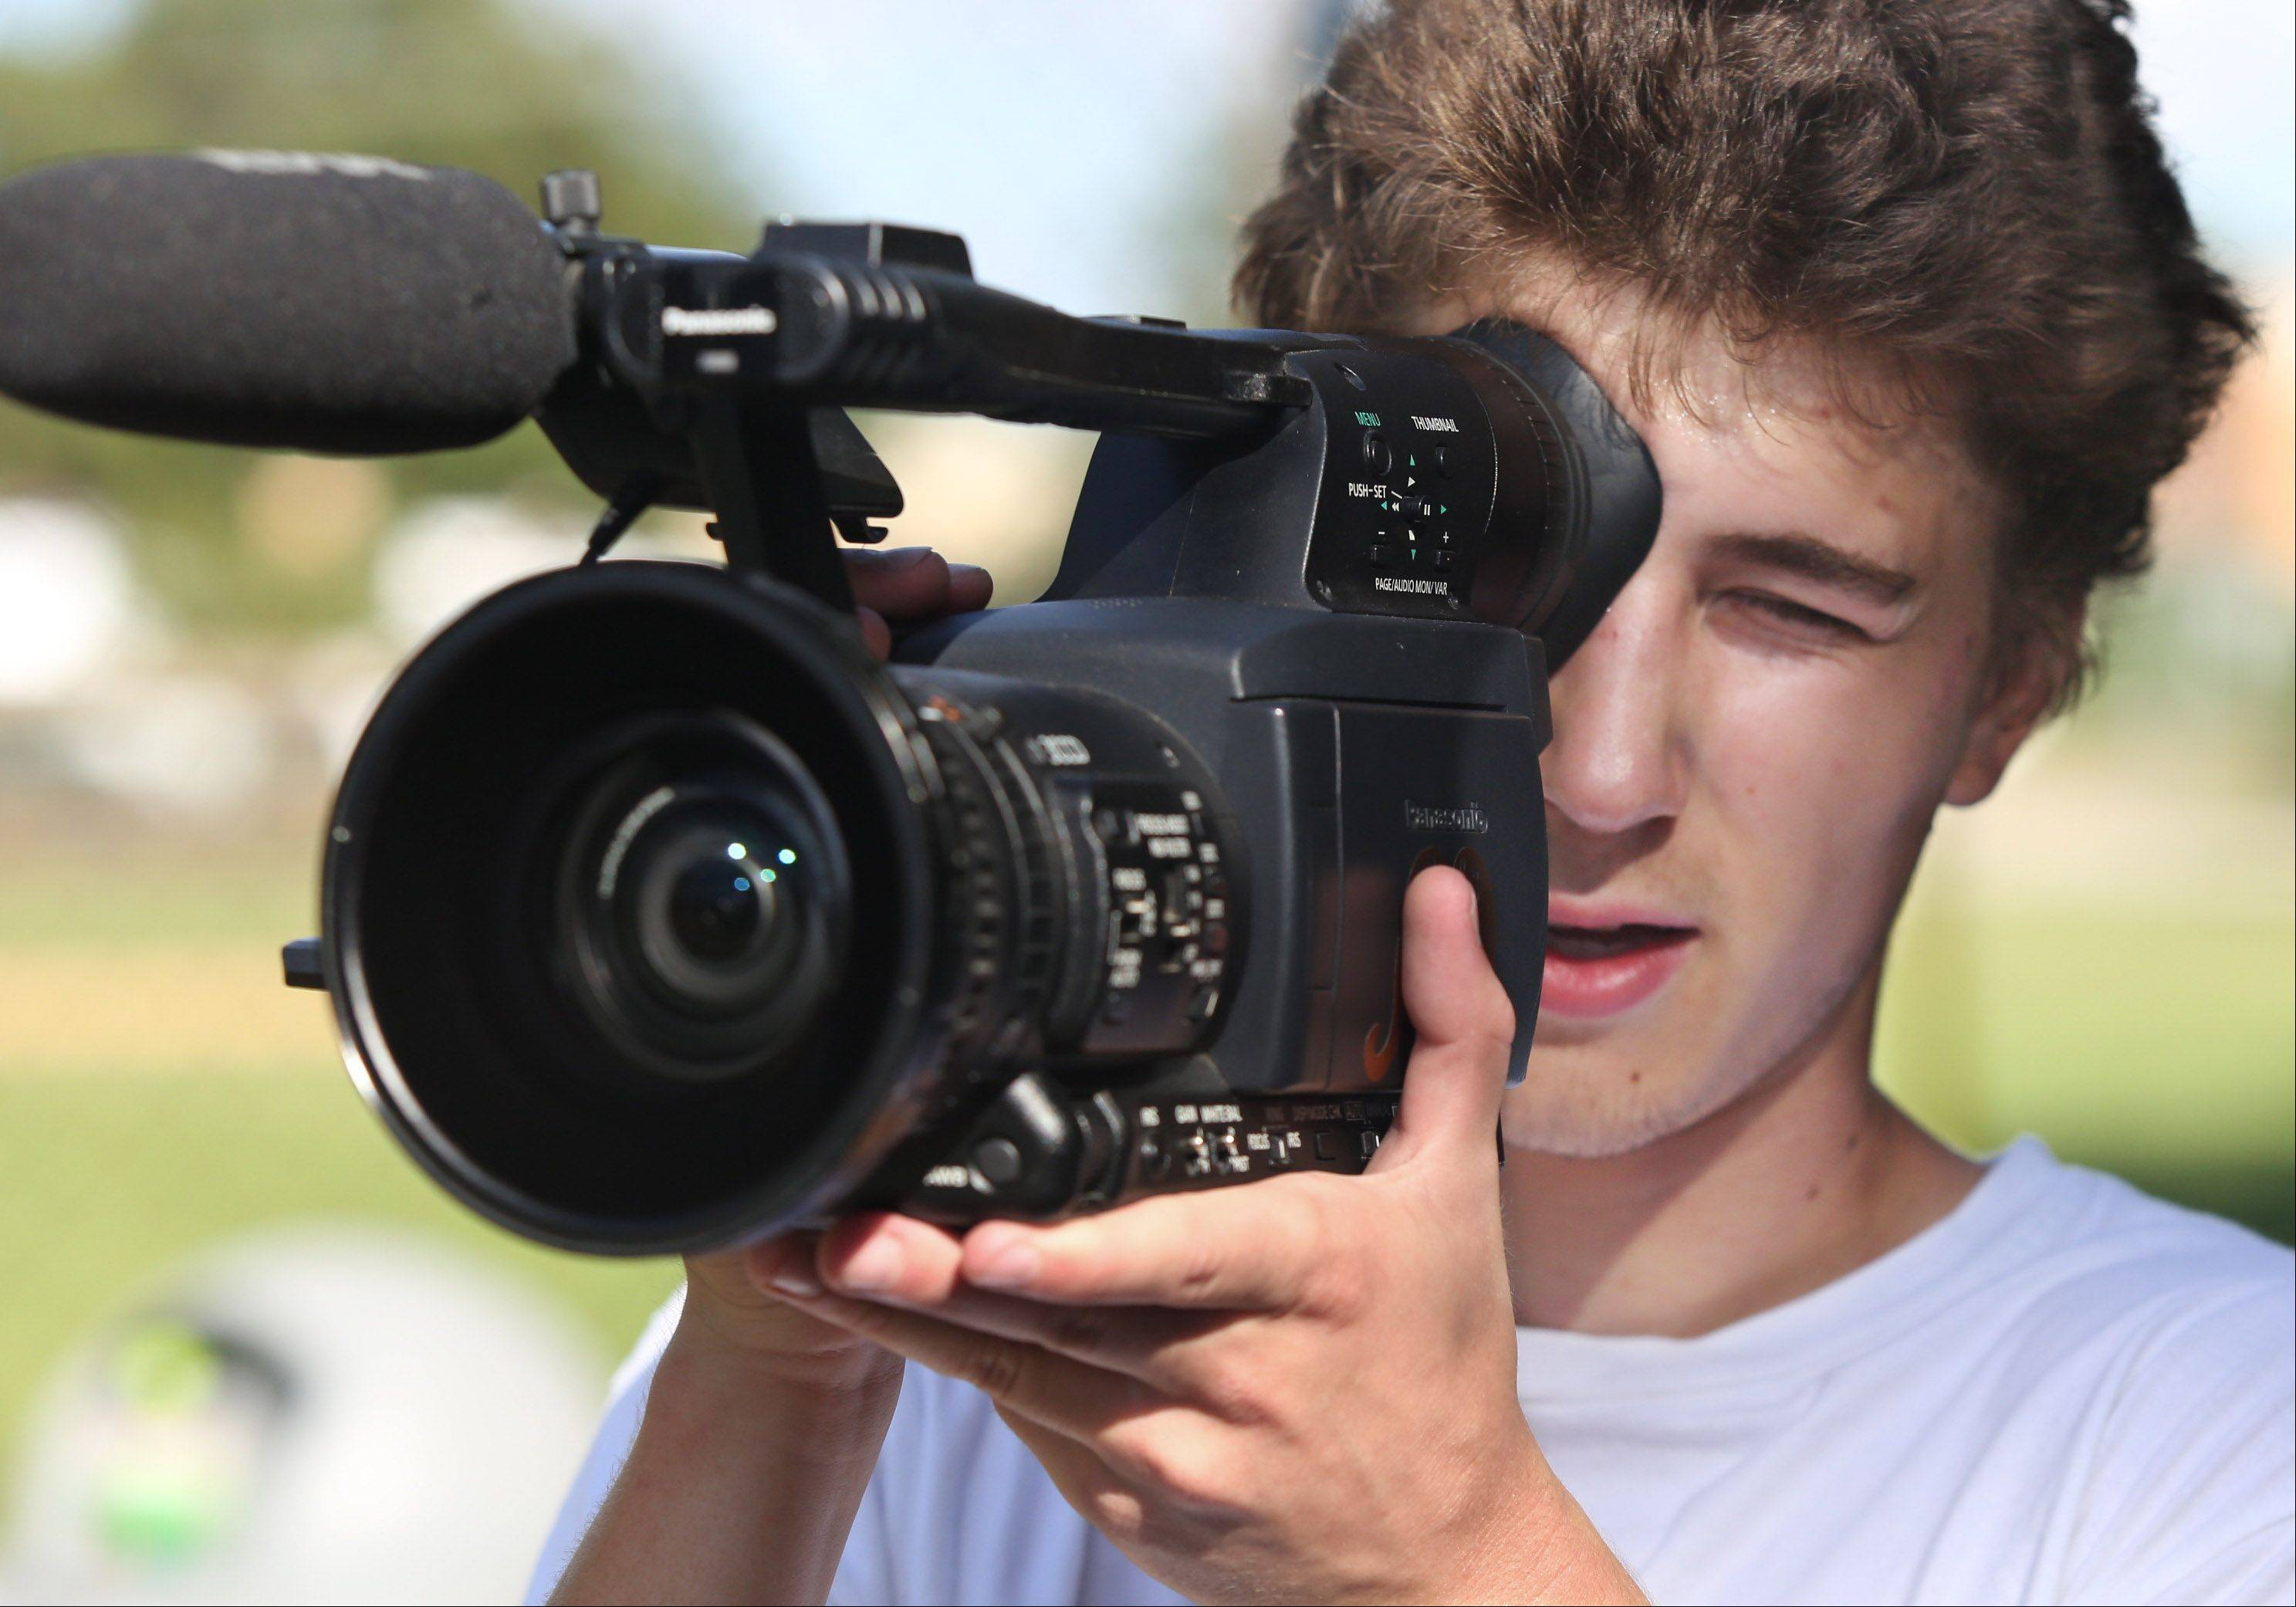 Videographer Max Kollman shoots video of street skateboarders and posts them on YouTube. His love of skating started when he was much younger, but eventually he found it more rewarding to document other skaters and create videos with the footage.